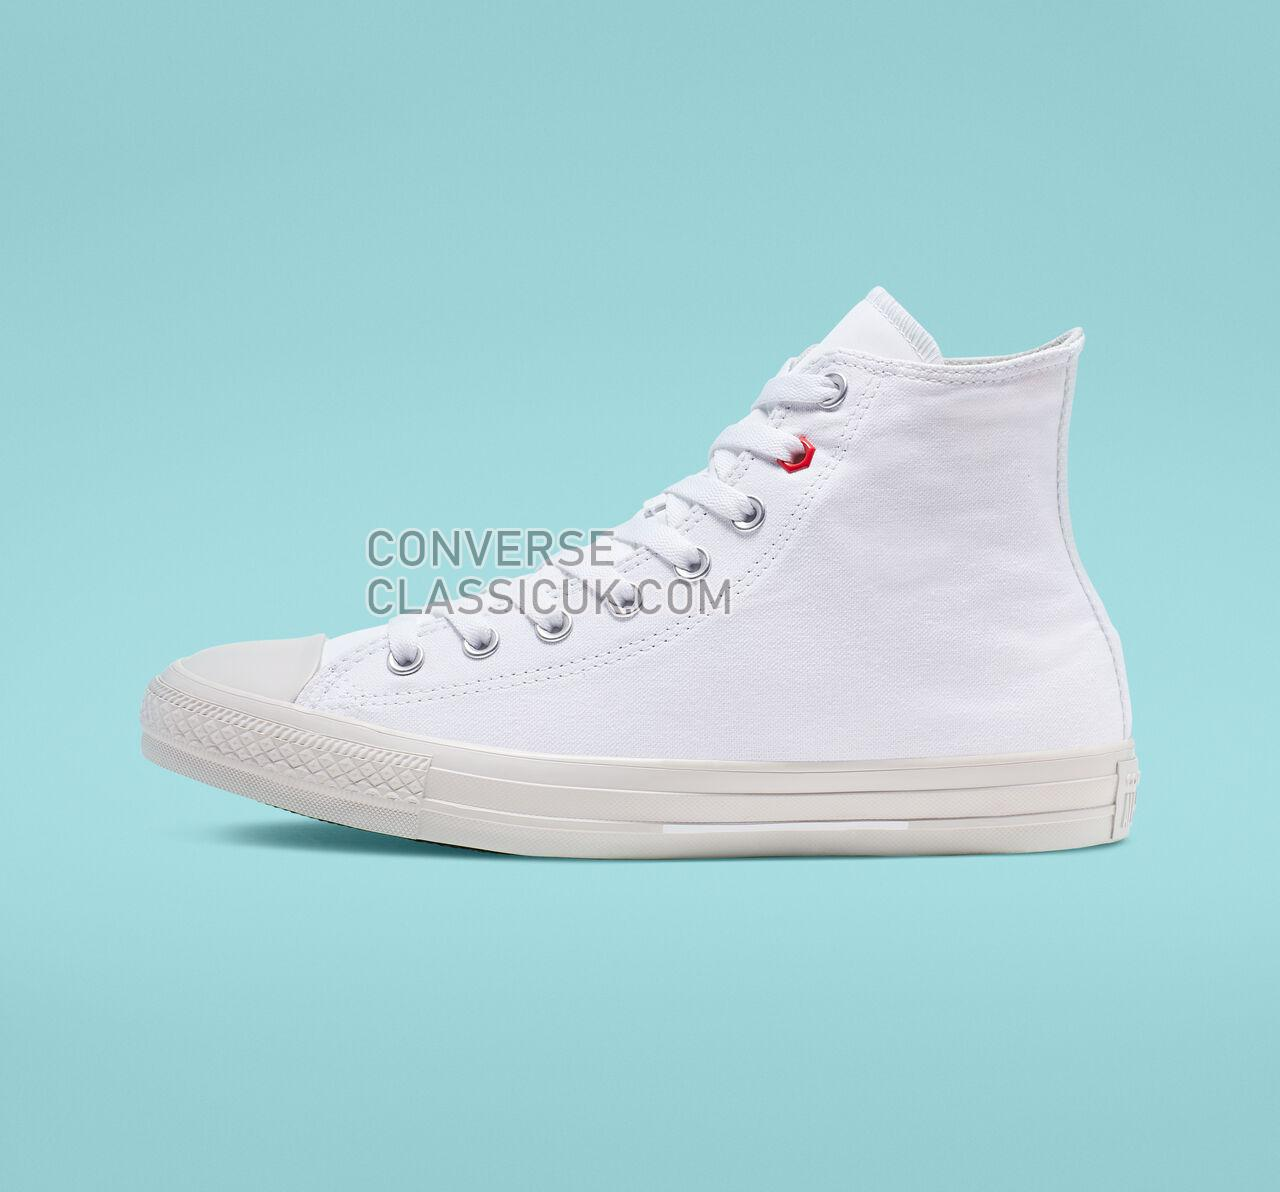 Converse Chuck Taylor All Star Flight School High Top Mens Womens Unisex 165051F White/Habanero Red/Pale Putty Shoes